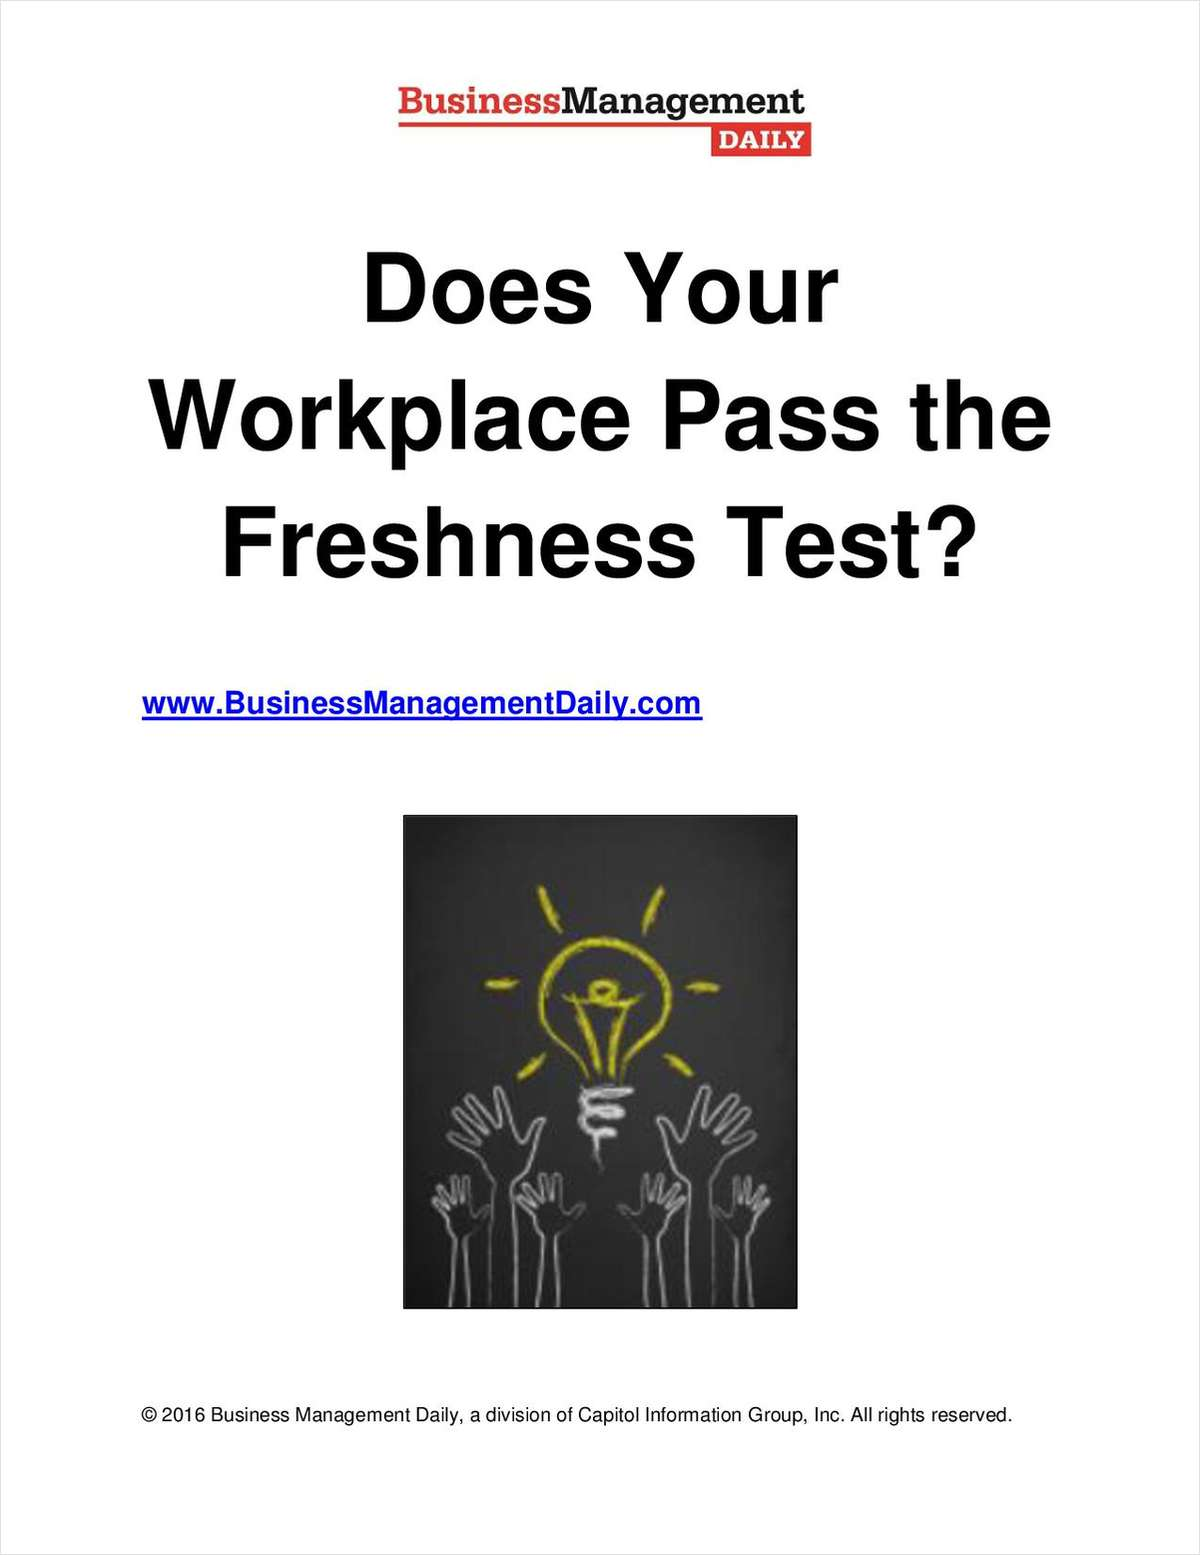 Does Your Workplace Pass the Freshness Test?